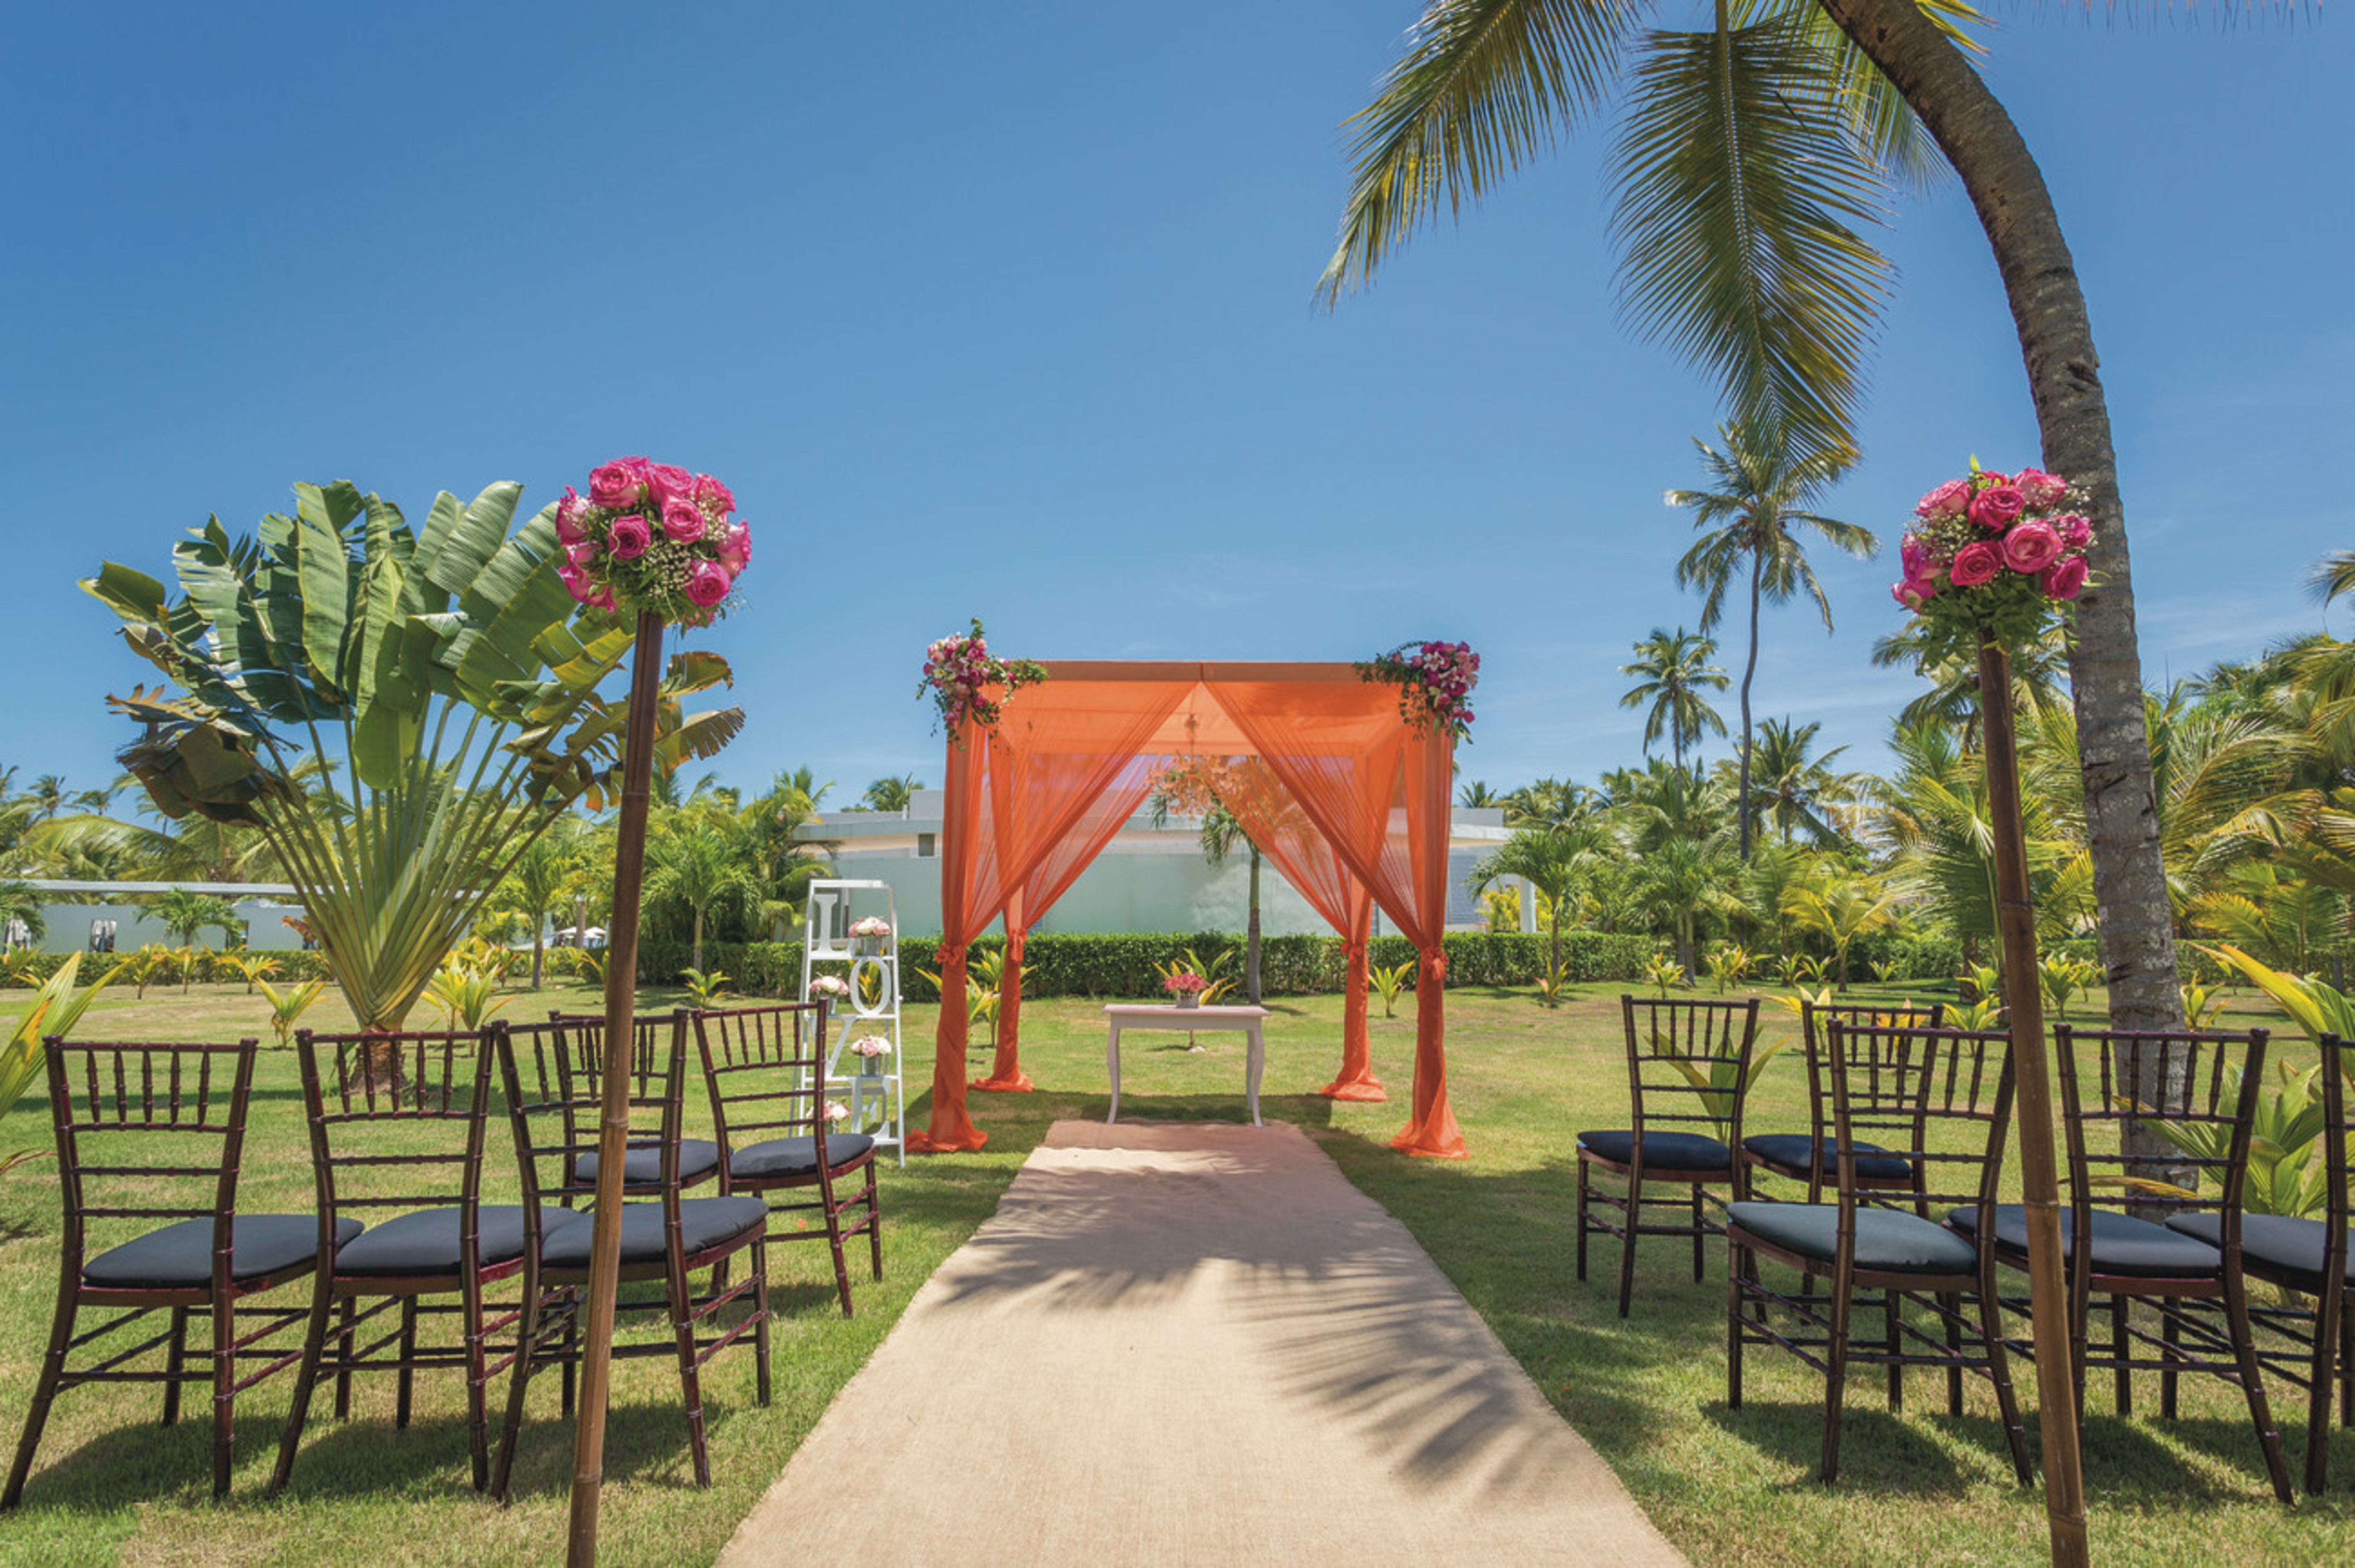 Garden ceremony at Riu Palace Bavaro - Weddings by RIU - All Inclusive hotel